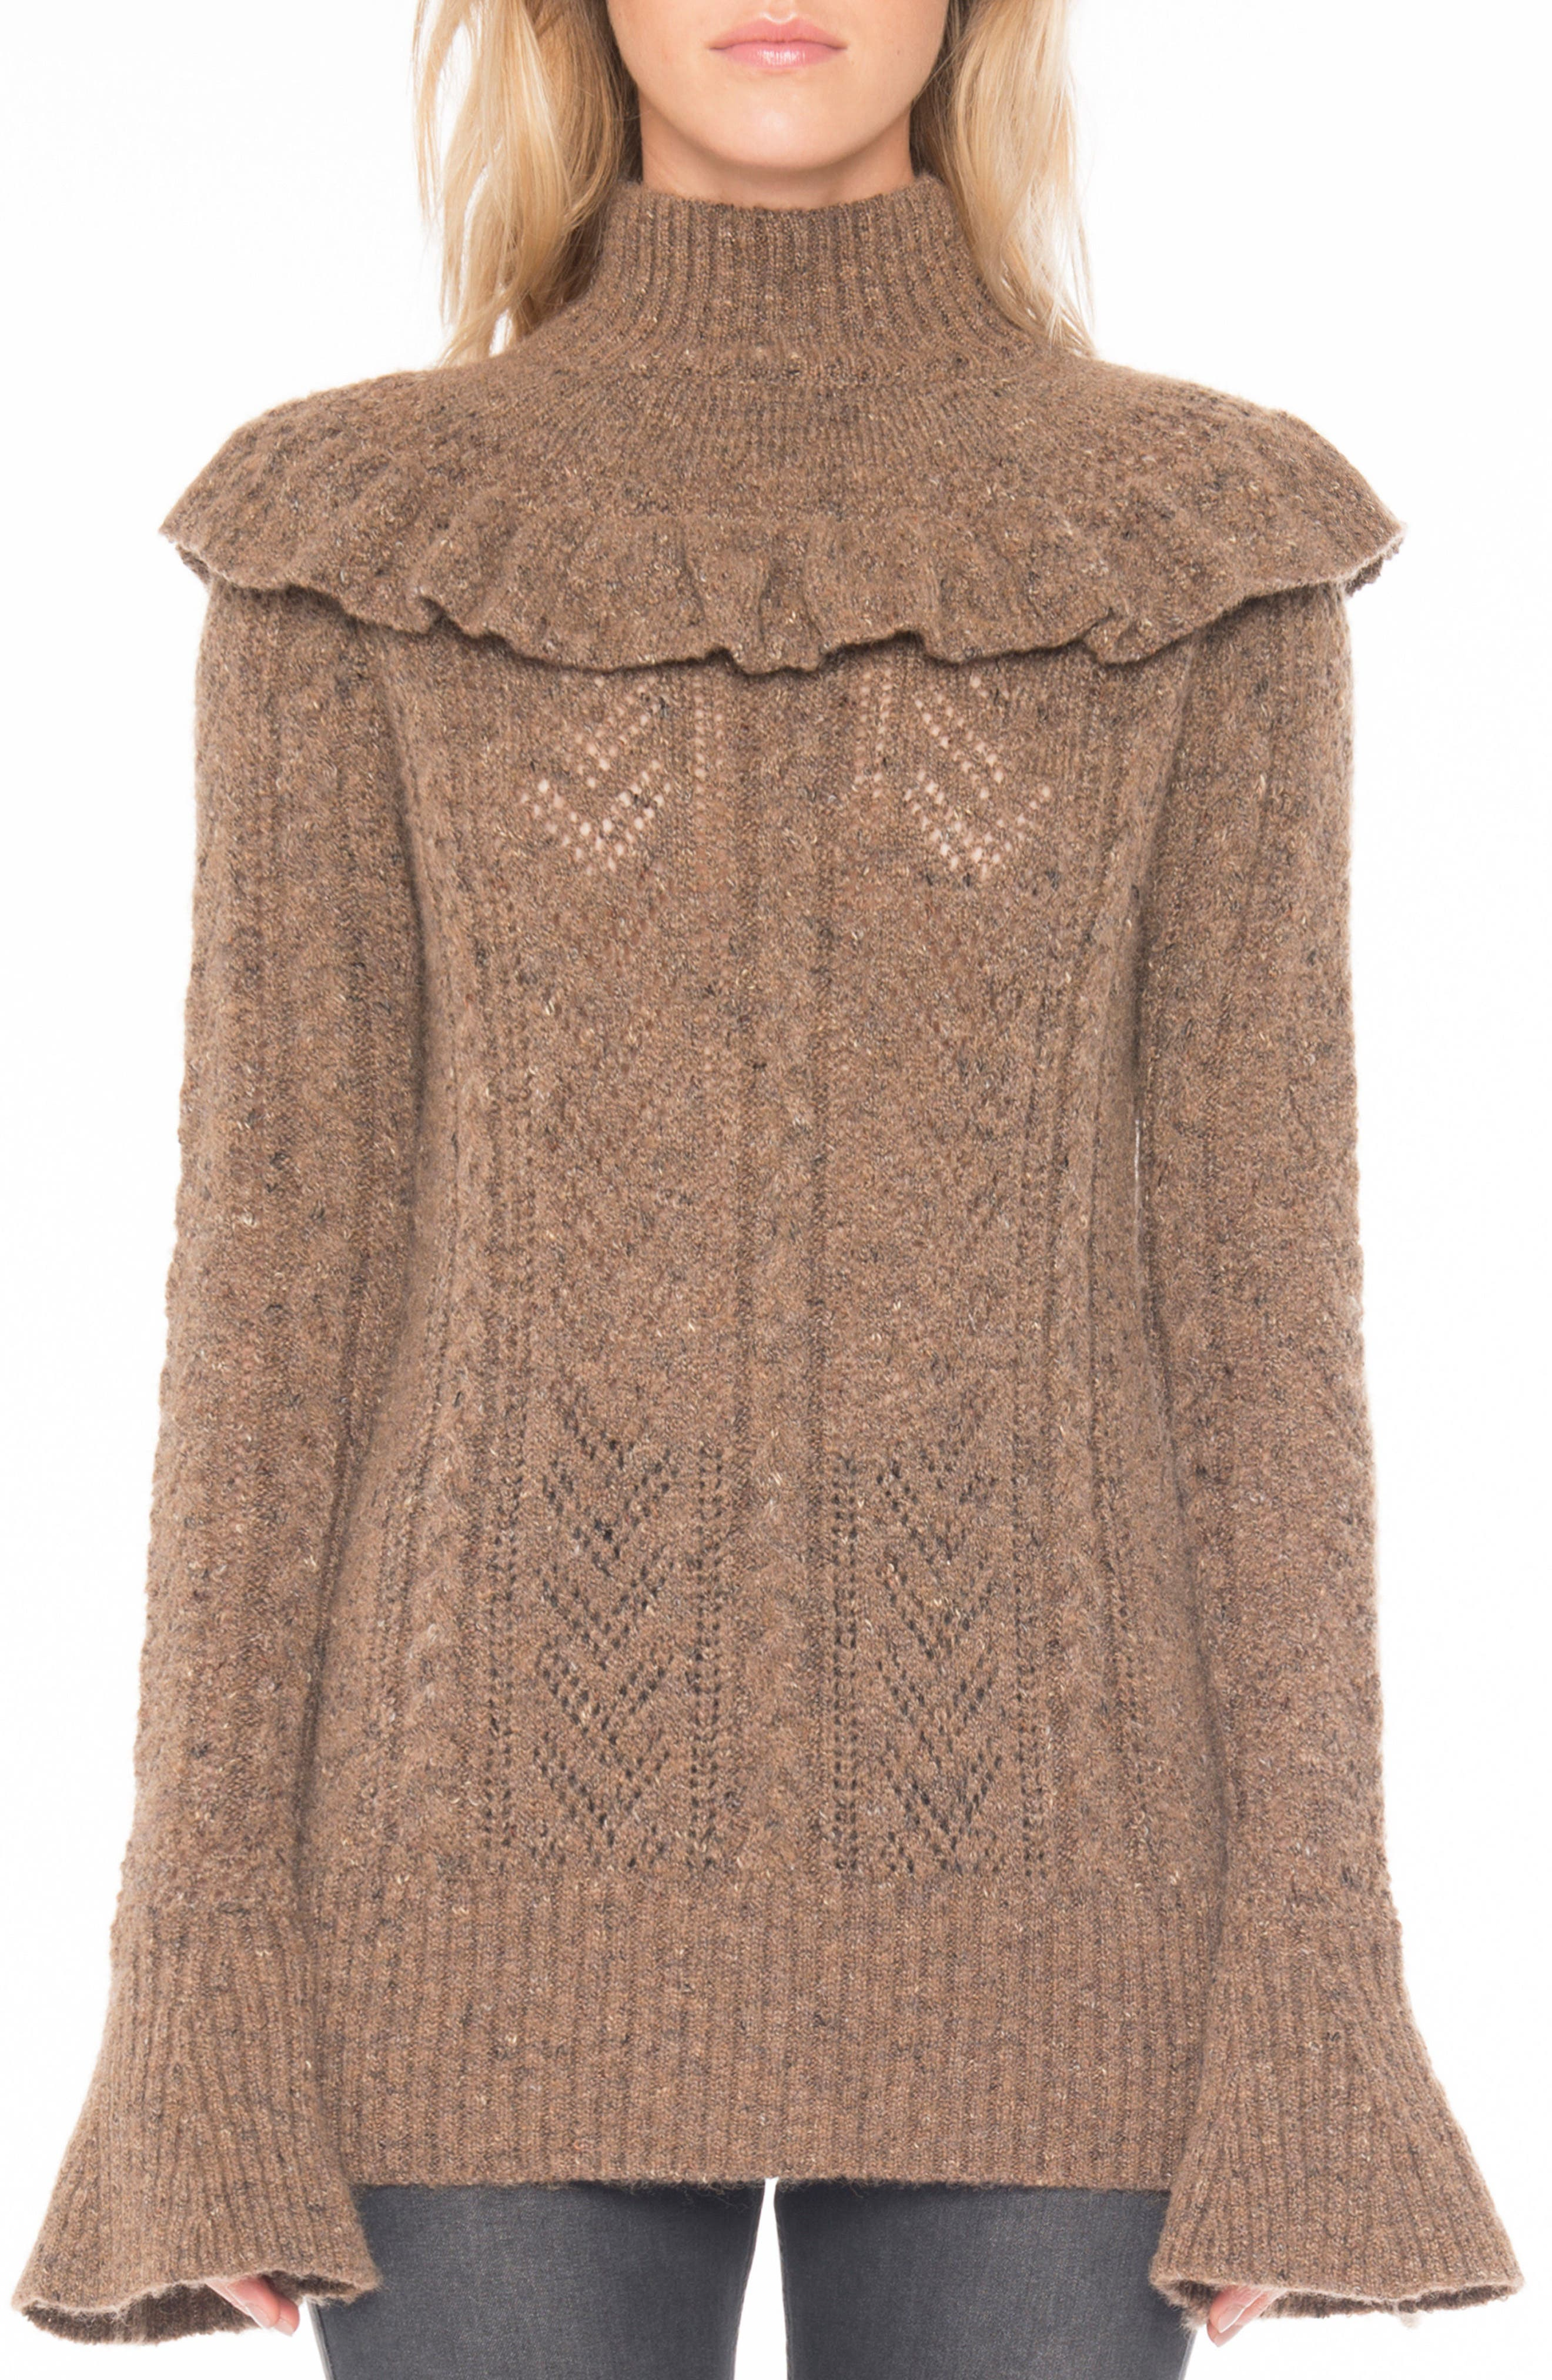 Alternate Image 1 Selected - Willow & Clay Pointelle Turtleneck Sweater